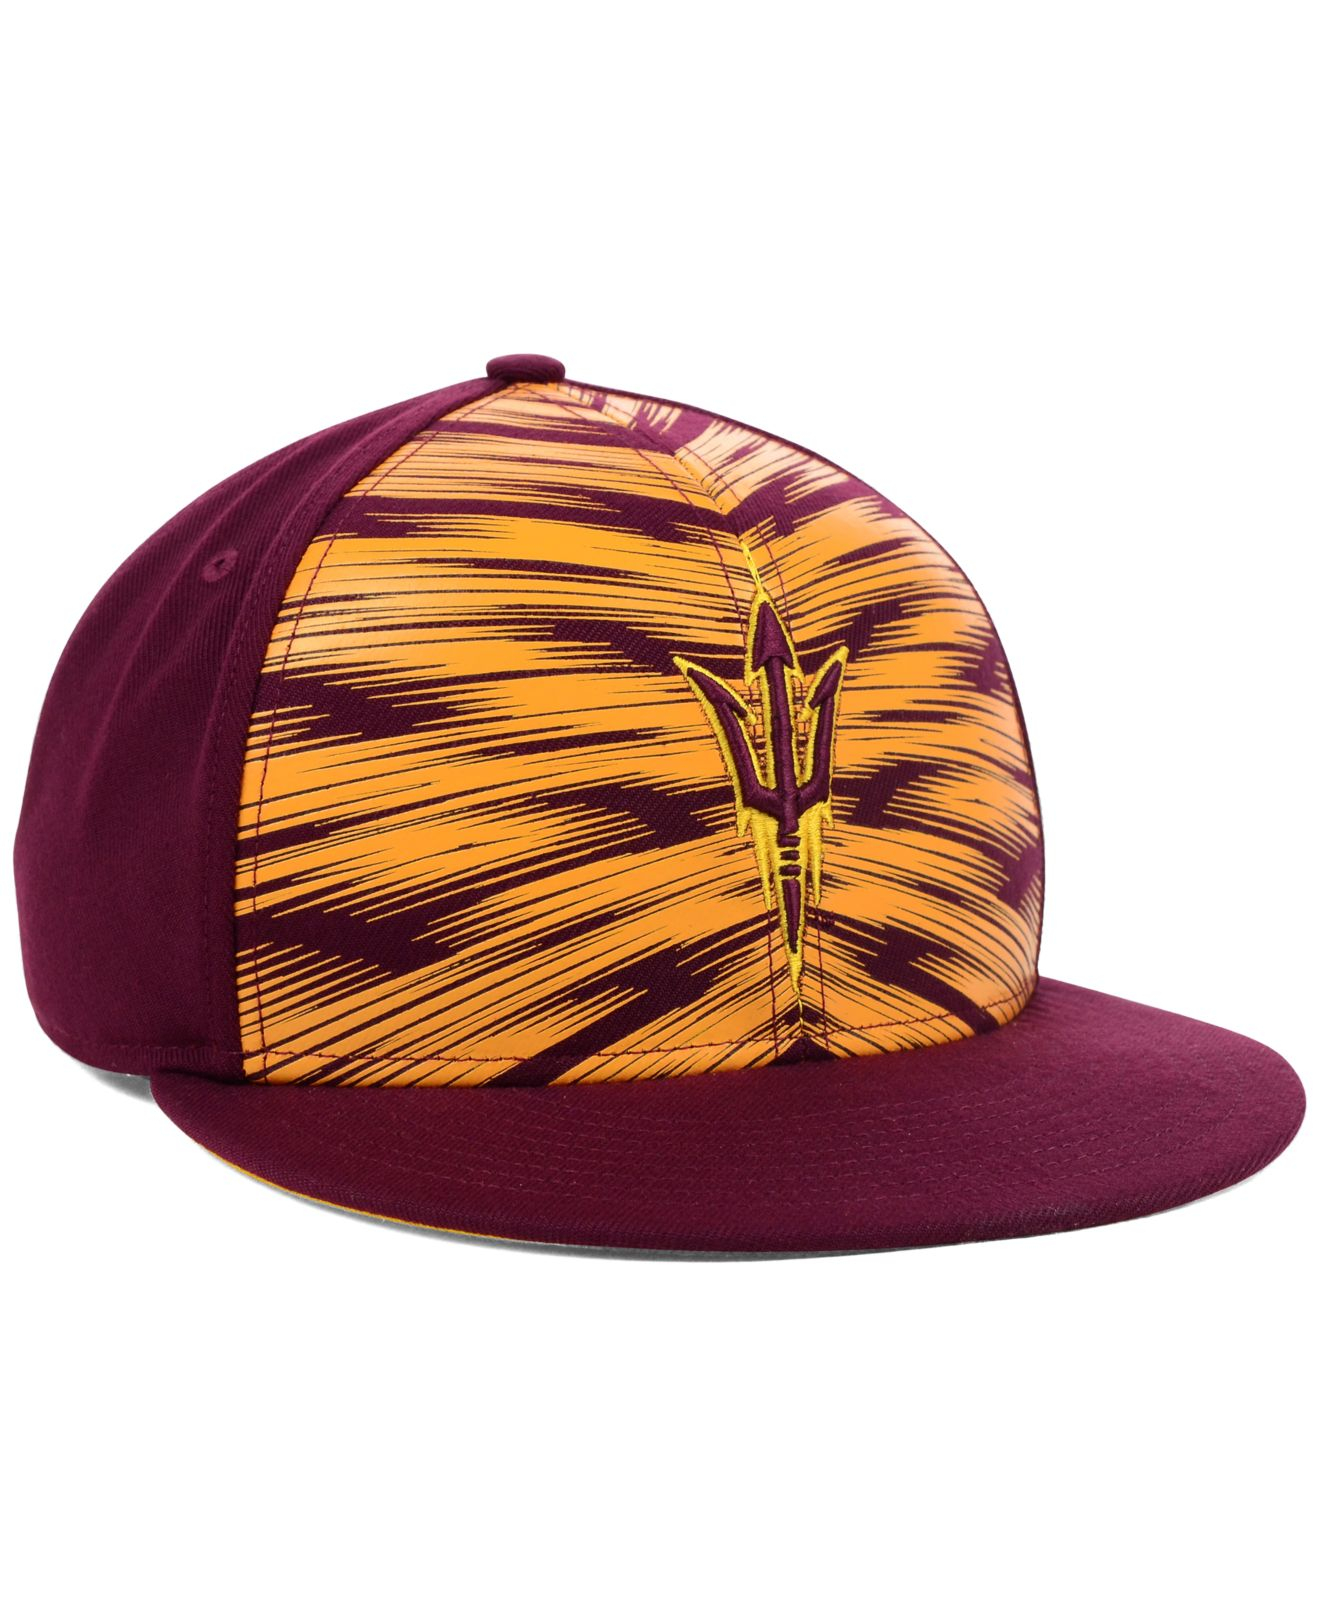 Lyst - Nike Arizona State Sun Devils Game Day Snapback Cap in Purple ... 6cd5f693339d